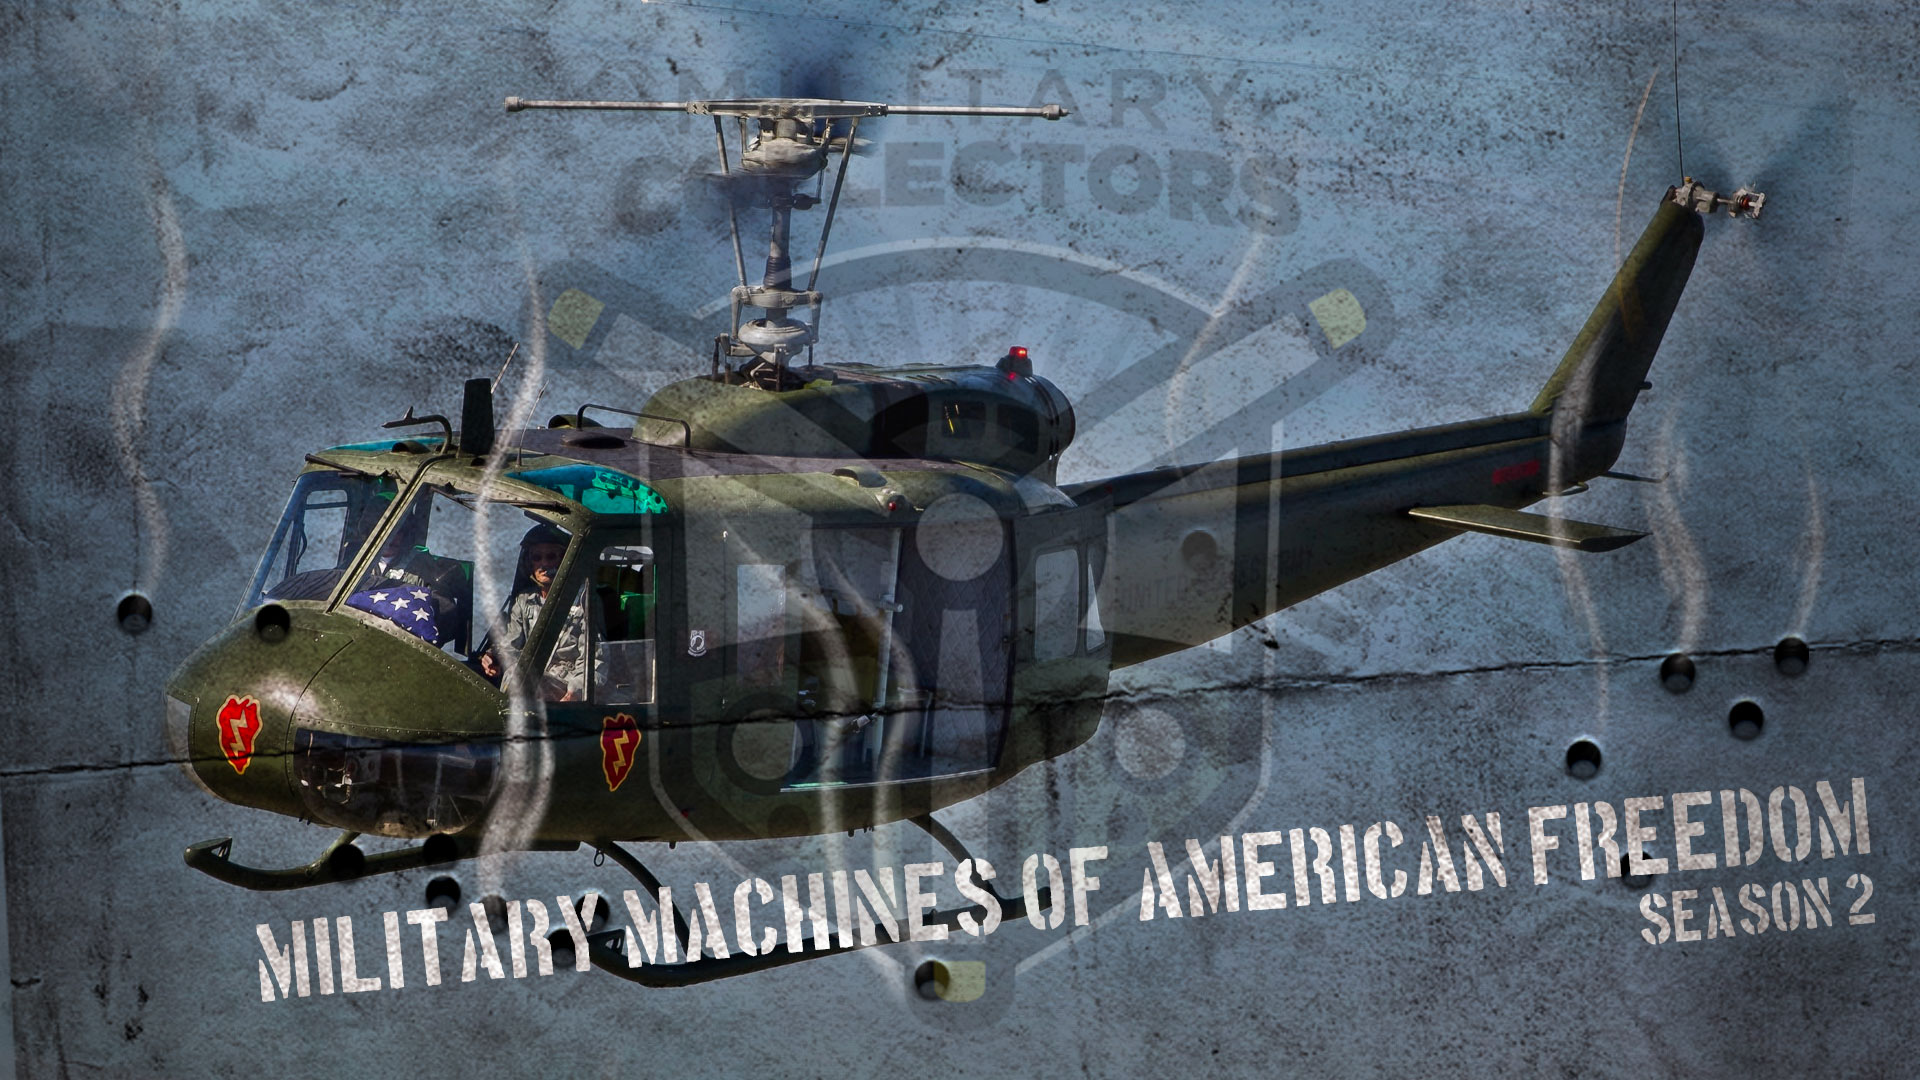 Military Machines of American Freedom